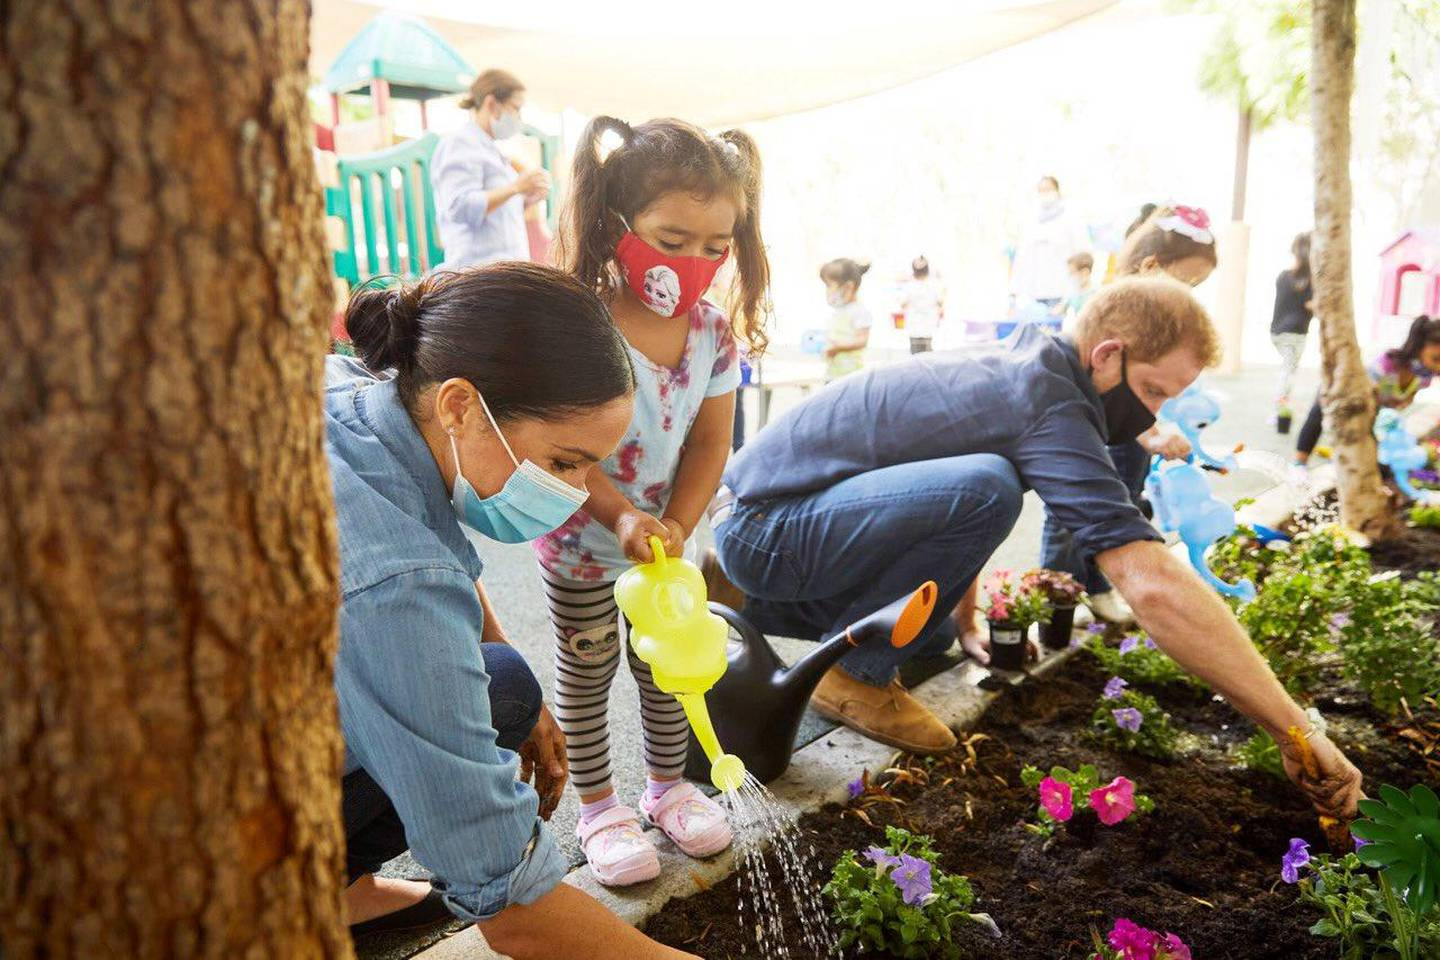 Prince Harry and Meghan Markle, the Duke and Duchess of Sussex, plant flowers and forget-me-nots during a visit to the Assistance League Los Angeles' Preschool Learning Center in Los Angeles, California, U.S. August 31, 2020, in this picture obtained from social media. Picture taken August 31, 2020. Mandatory credit MATT SAYLES/via REUTERS ATTENTION EDITORS - THIS IMAGE HAS BEEN SUPPLIED BY A THIRD PARTY. MANDATORY CREDIT. NO RESALES. NO ARCHIVES.